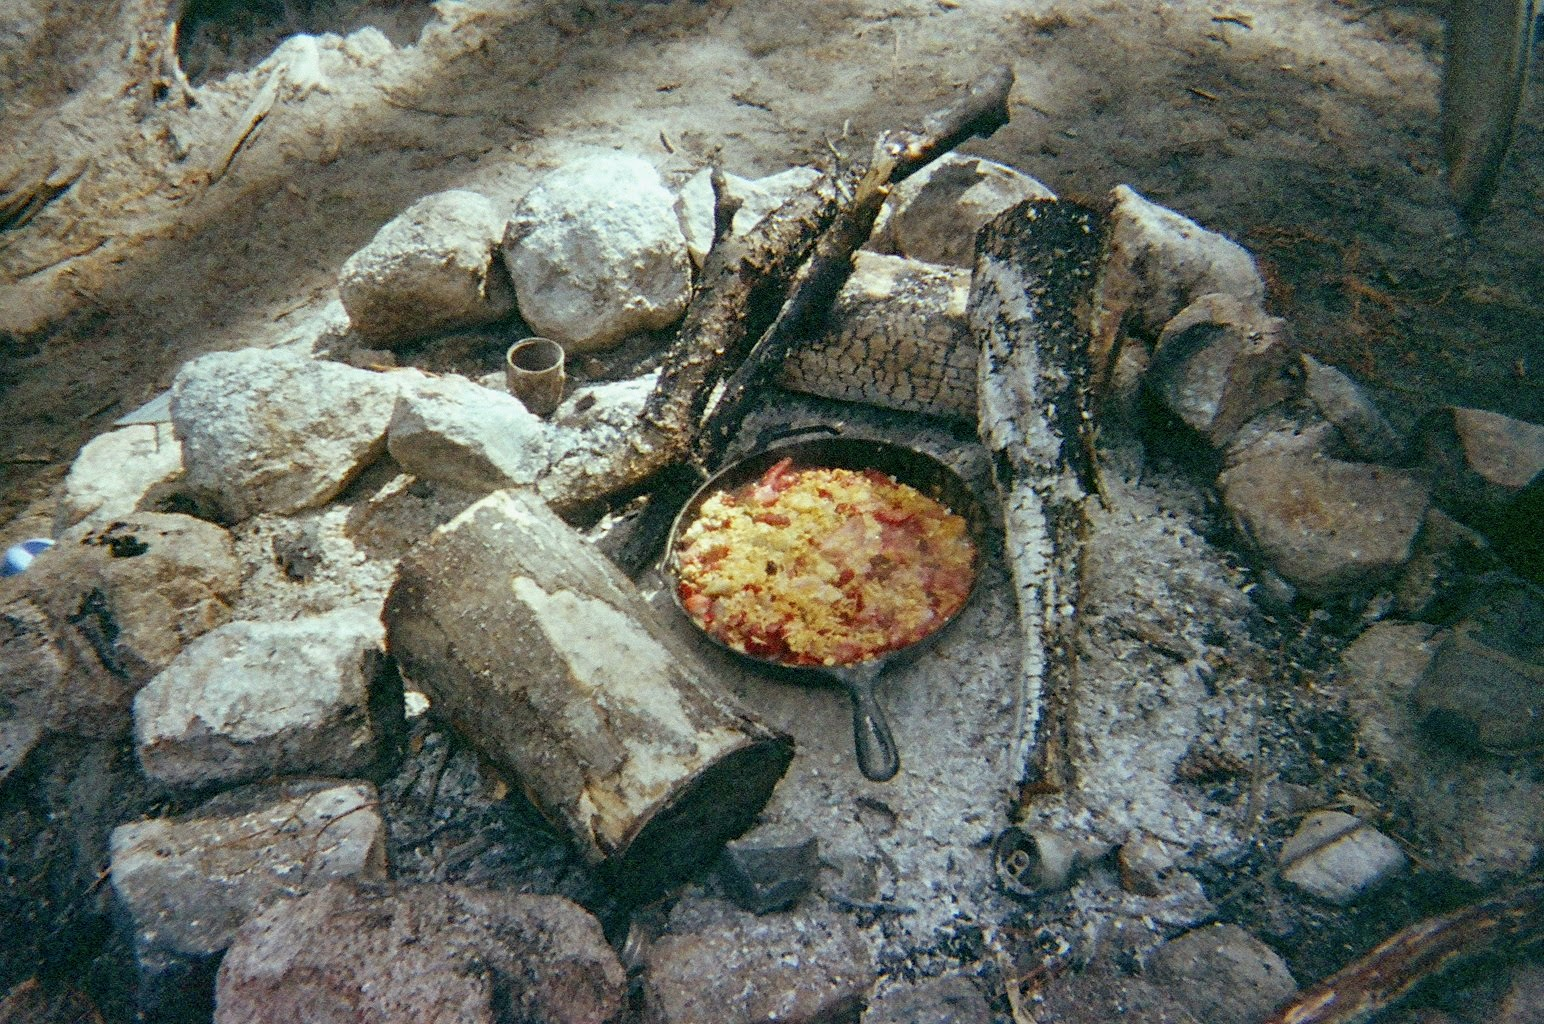 Strawberry Banana Skillet Crisp on Campfire